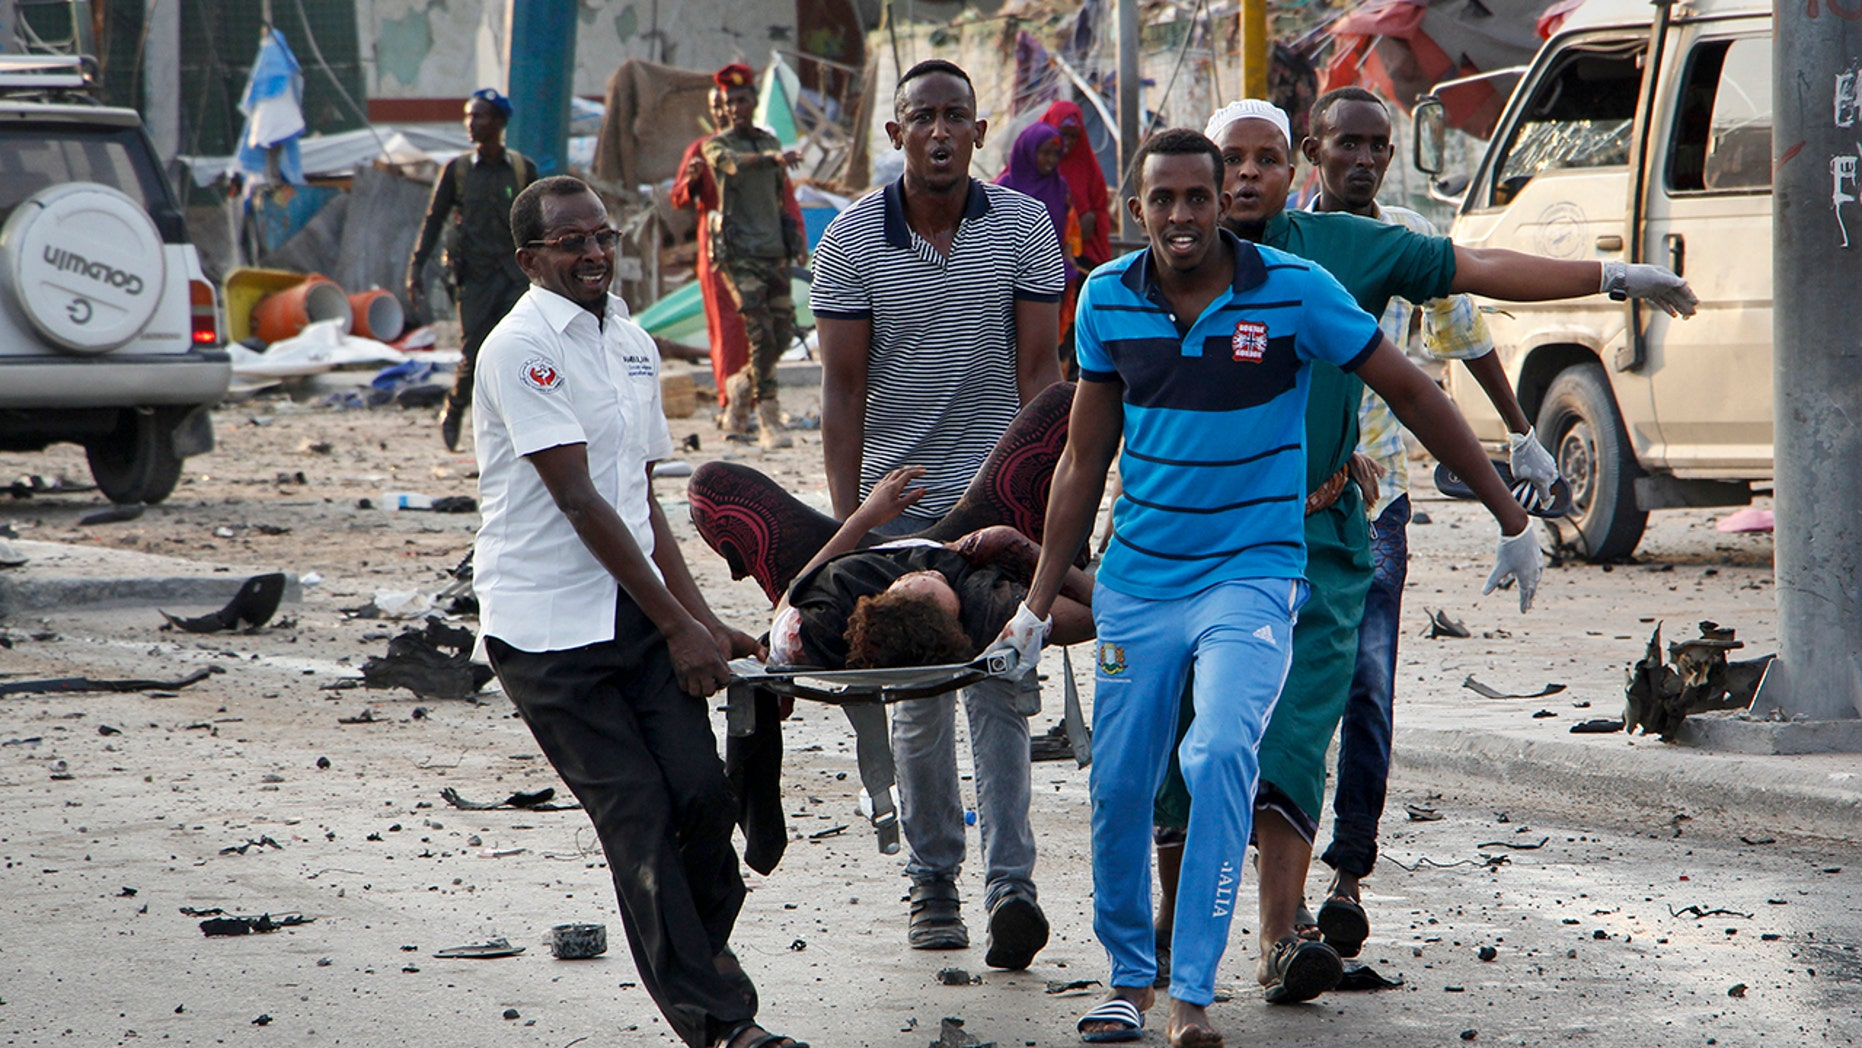 More than 20 killed after bomb blasts in Mogadishu